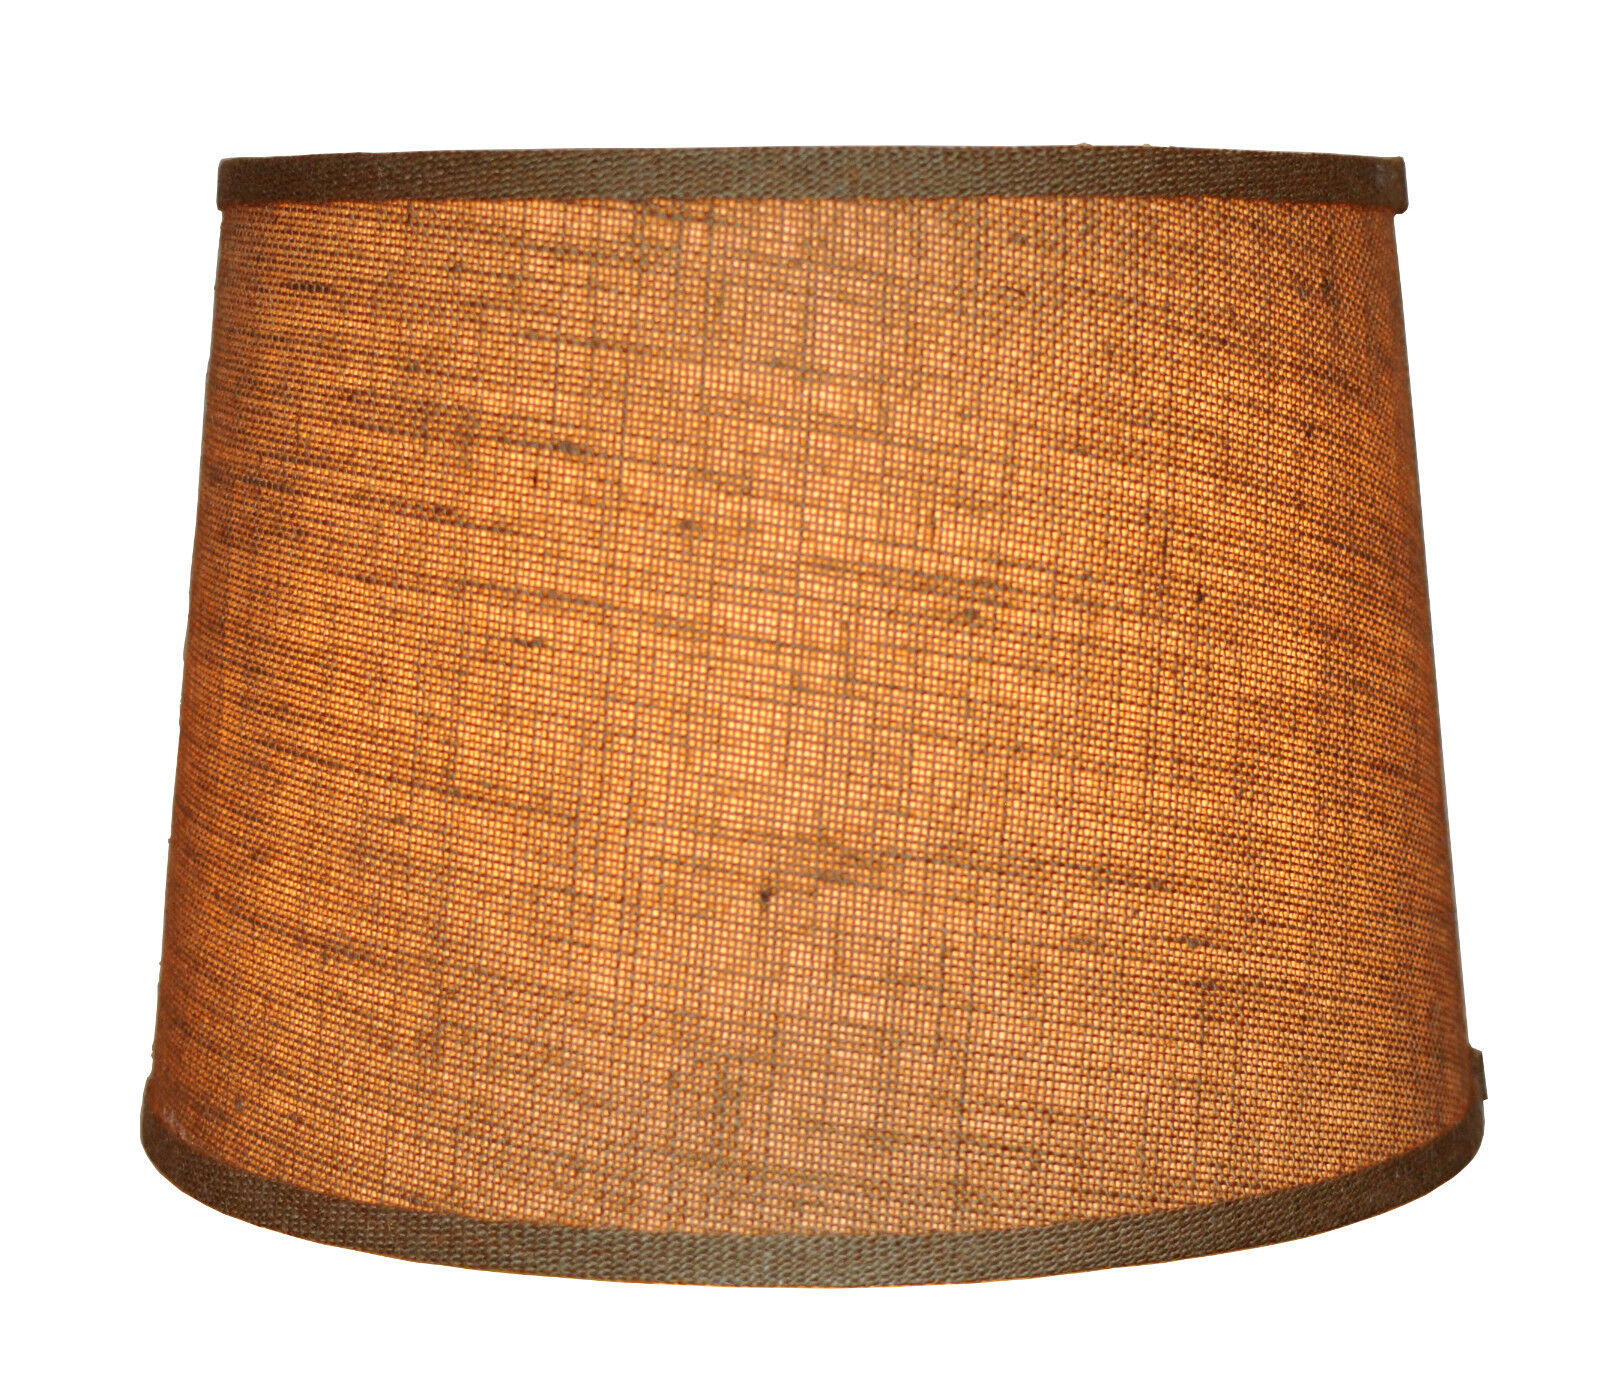 Urbanest burlap french drum style lamp shade 10x12x85 lampshade brand new lowest price mozeypictures Choice Image